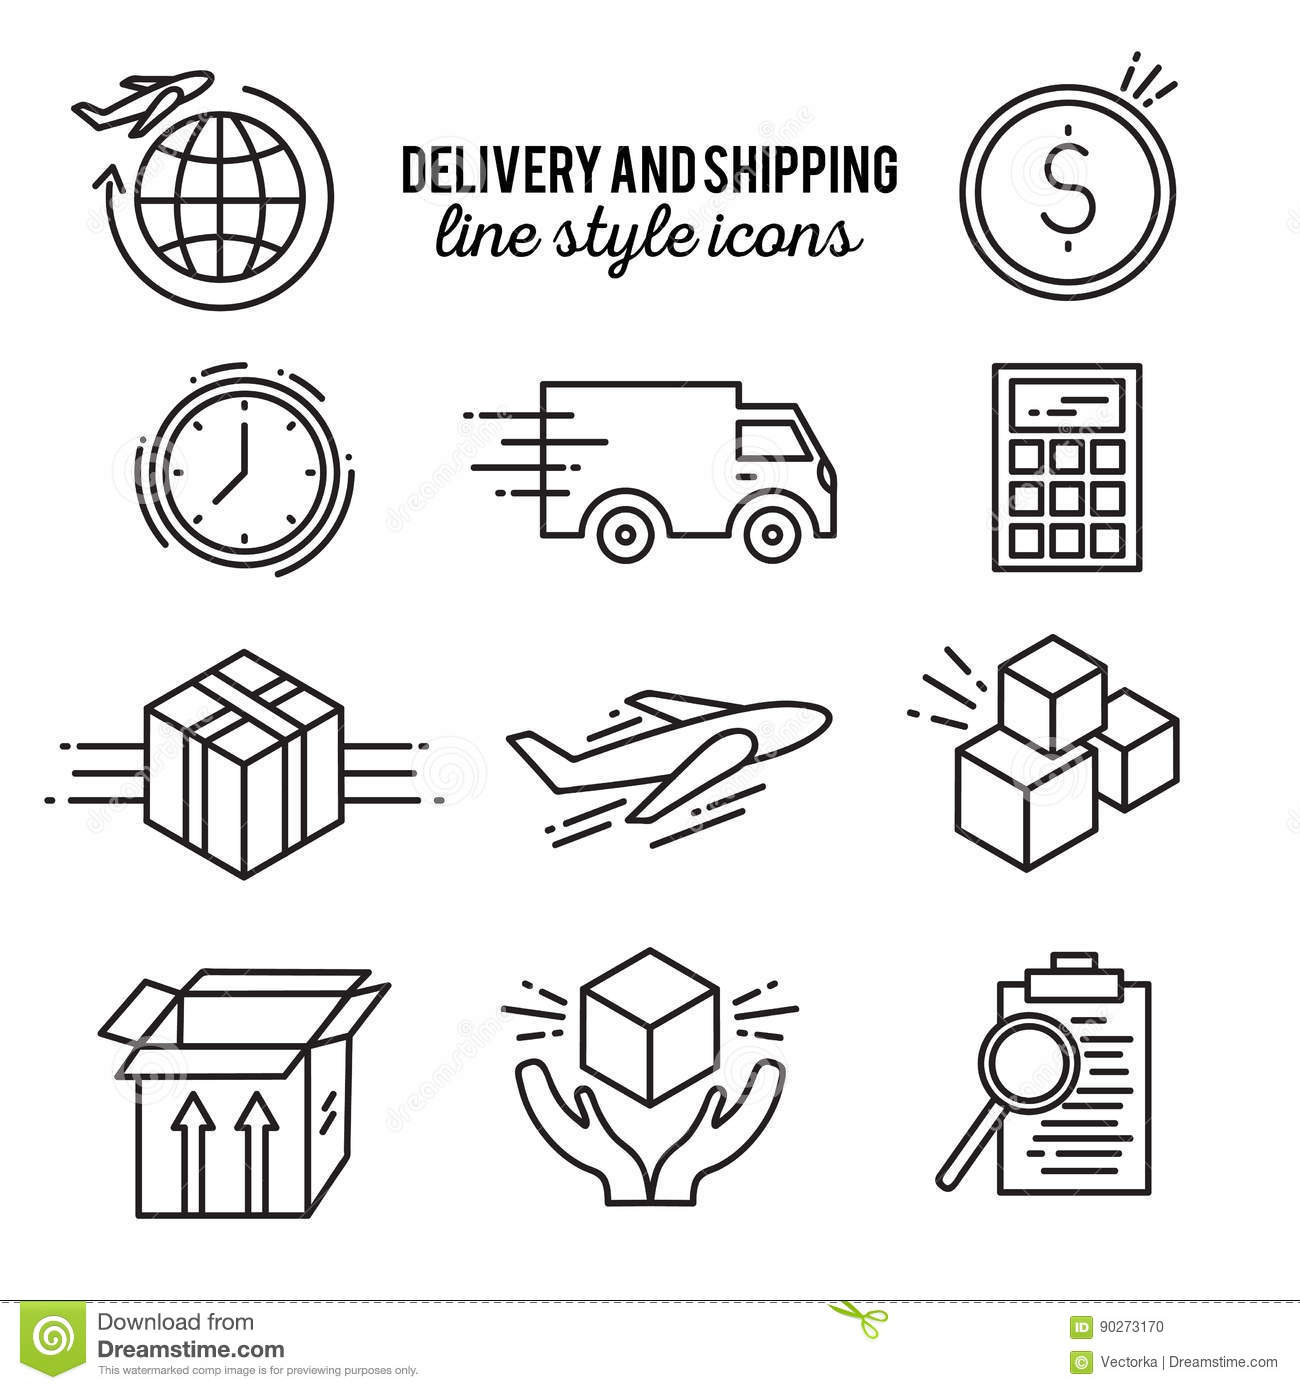 Delivery Line Style Icon Set Stock Vector - Illustration of